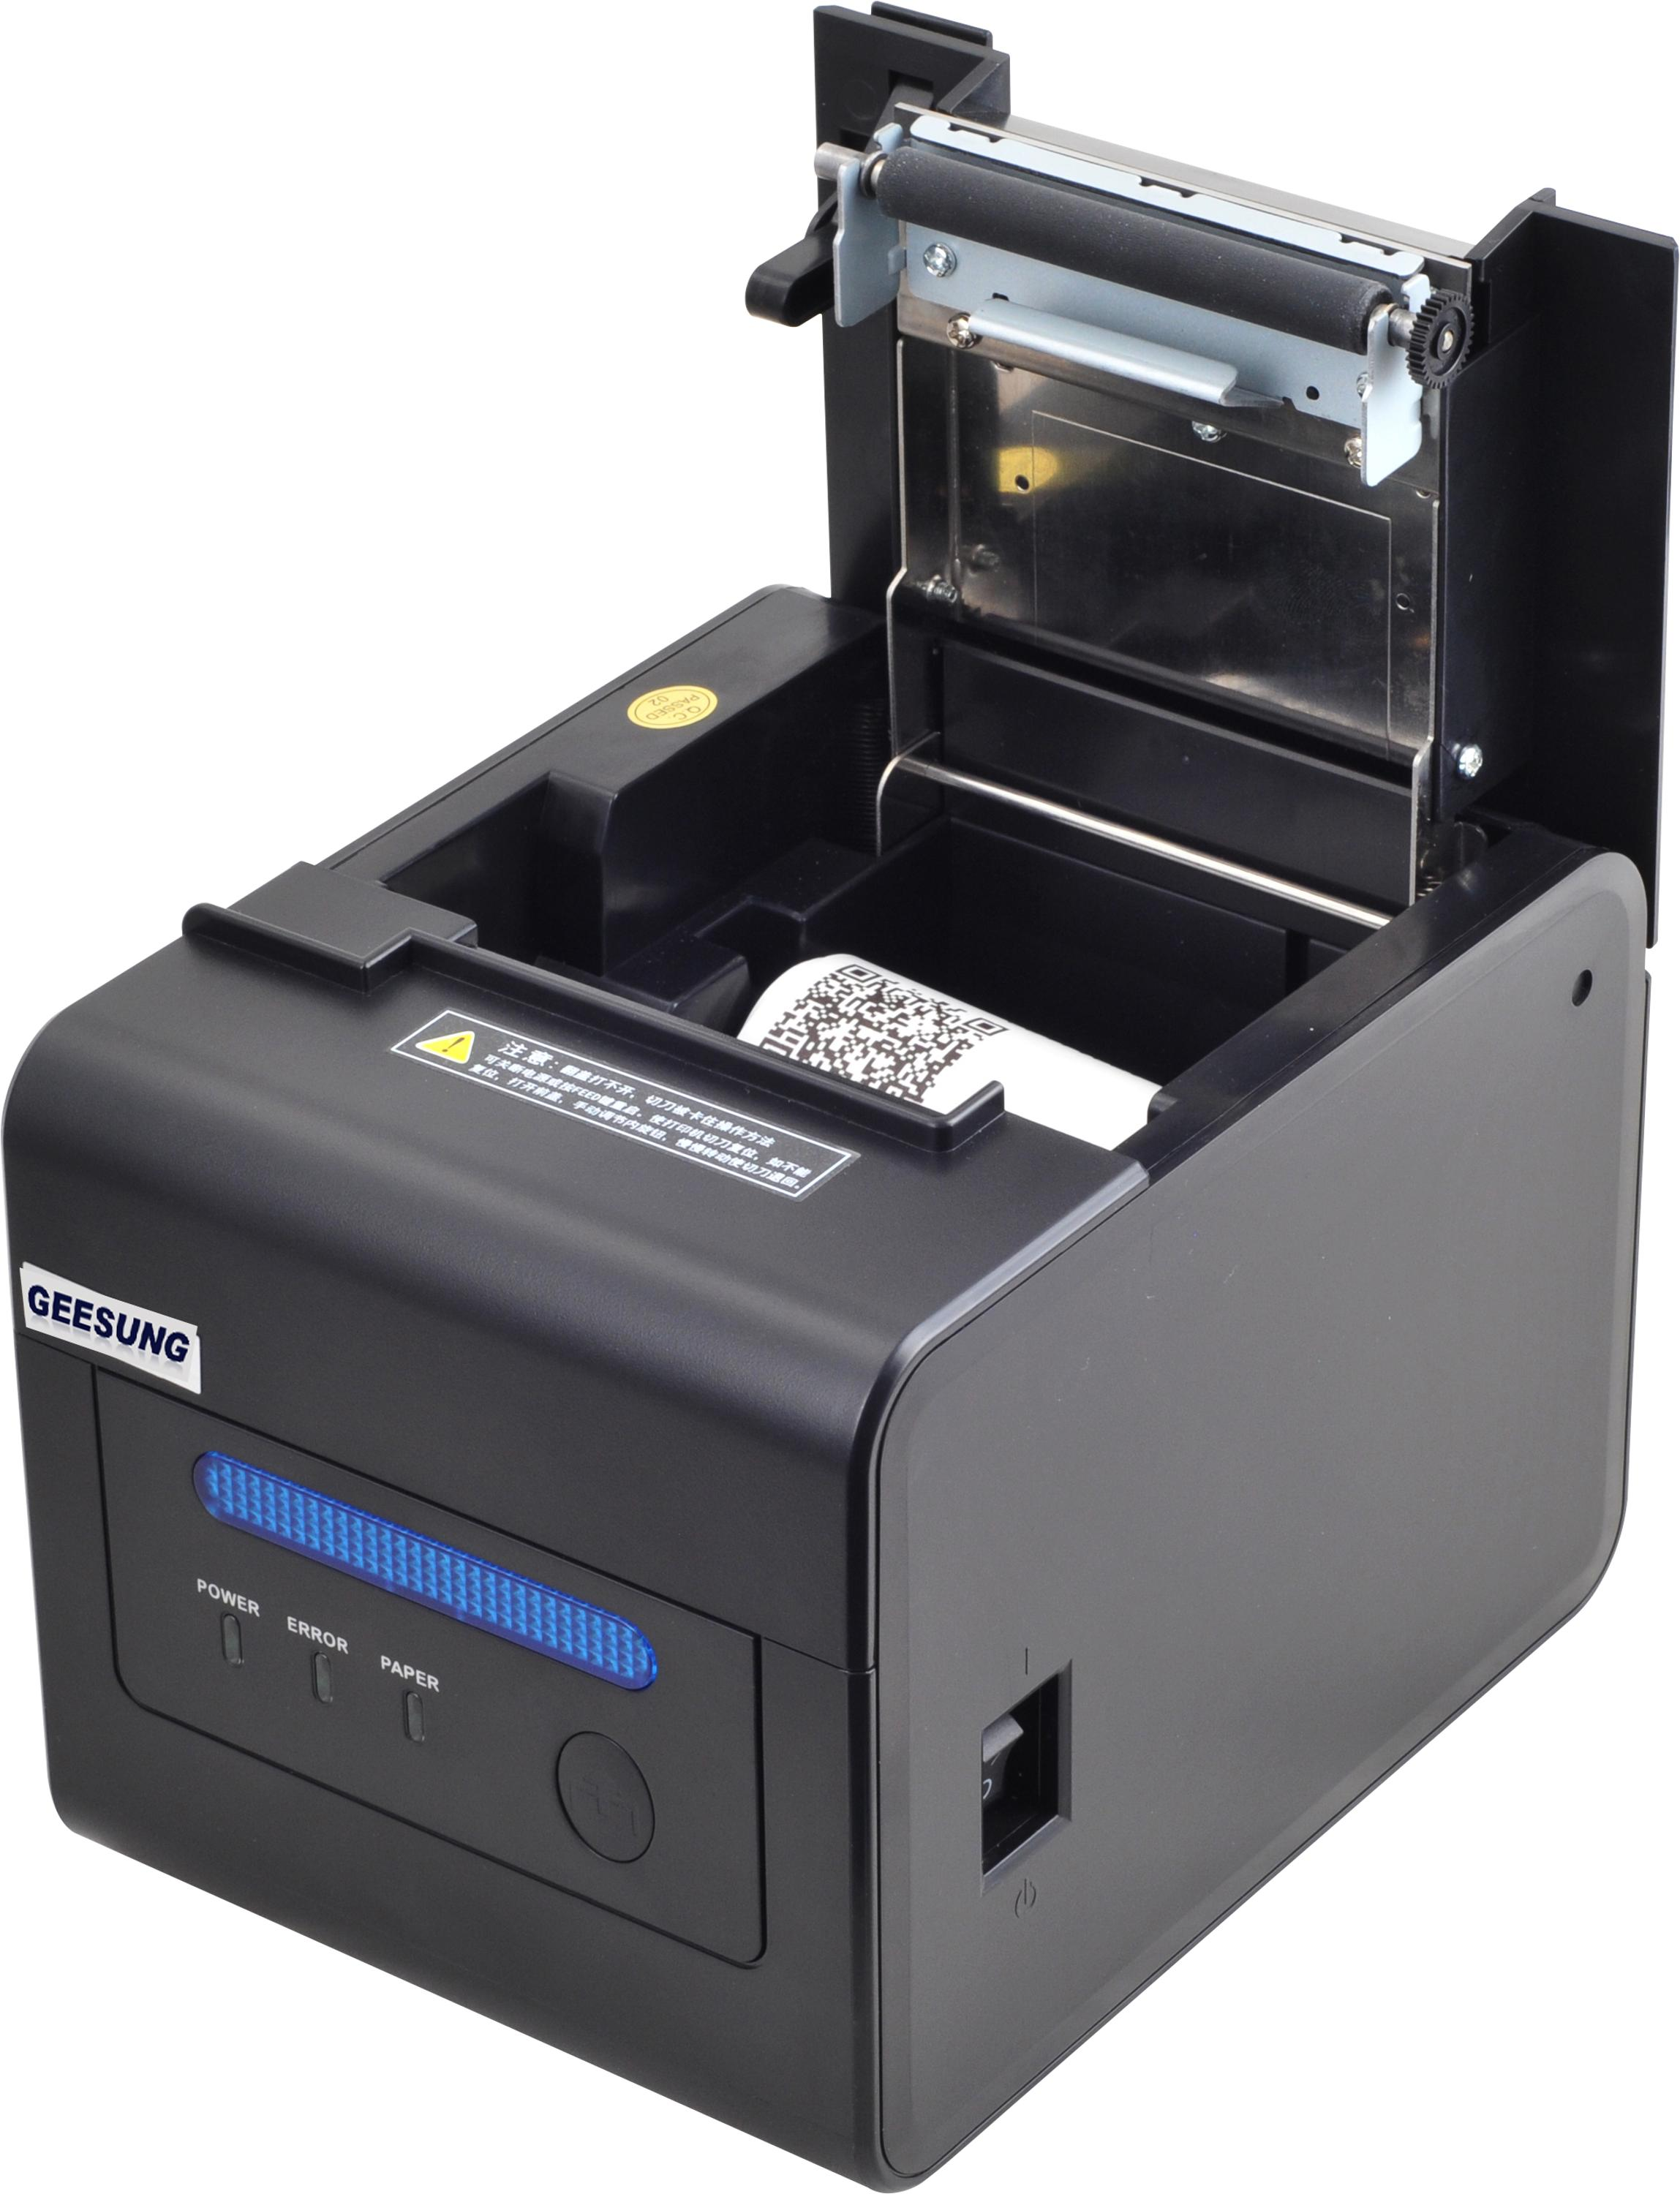 58/80mm thermal printer Built-in Big Alarm waterproof,dust-resistive and anti-oil,suitable for kitchen